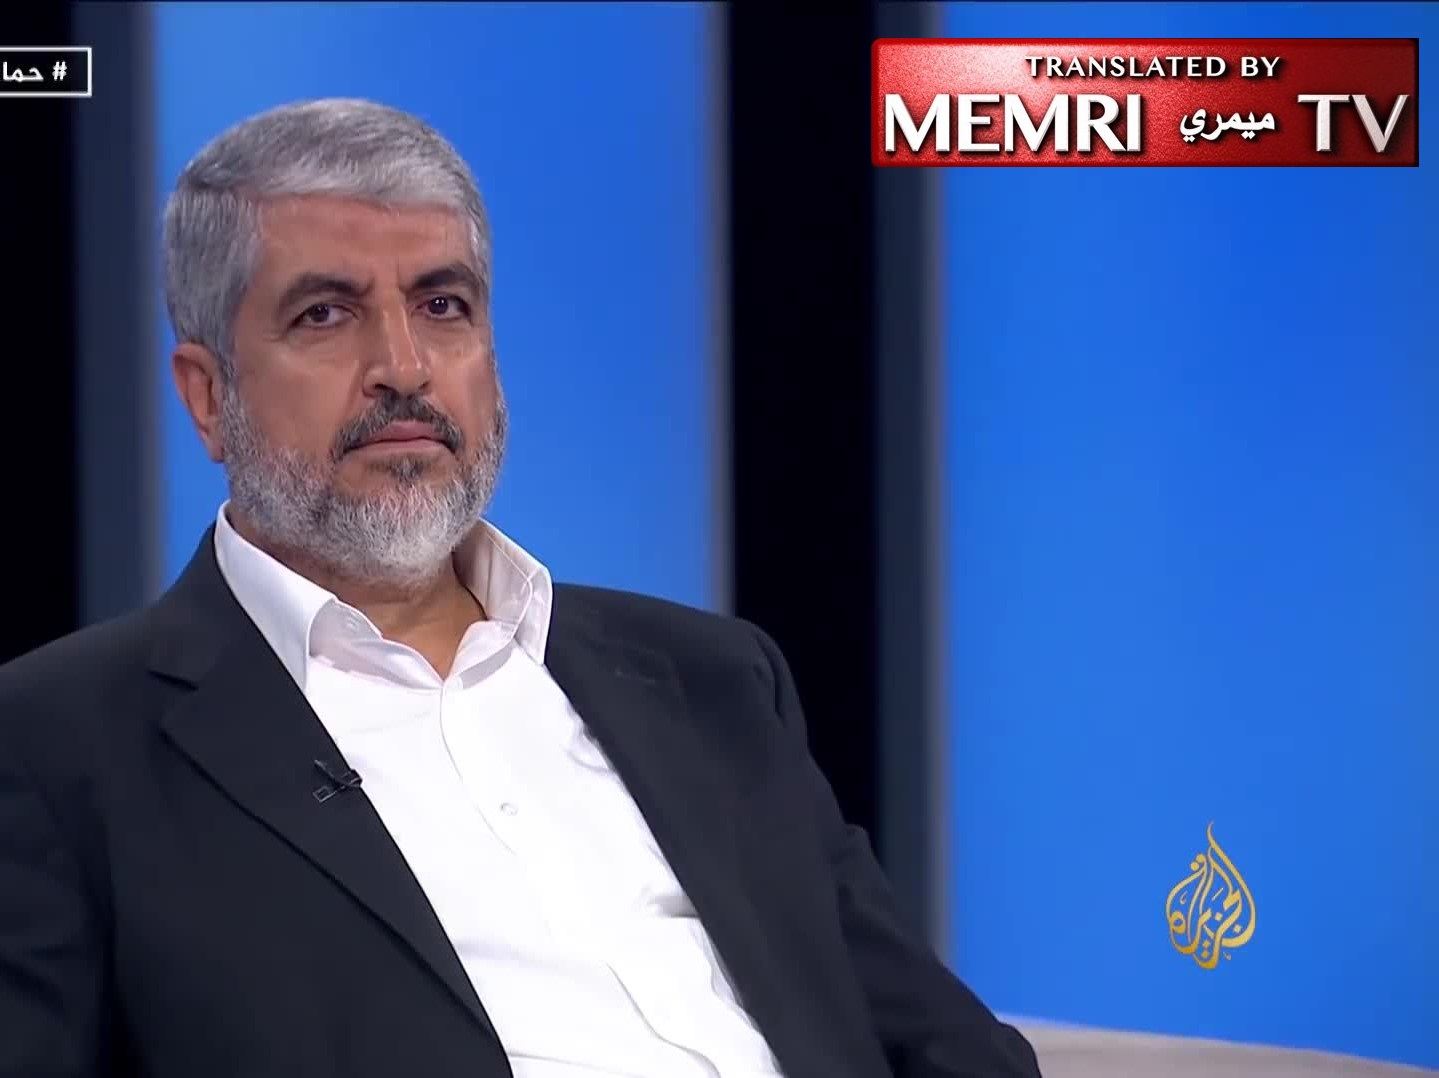 Former Hamas Political Bureau Head Khaled Mash'al: We Agree to a State within the Pre-1967 Borders, But without Ceding the Rest of Palestine and without Recognizing Israel